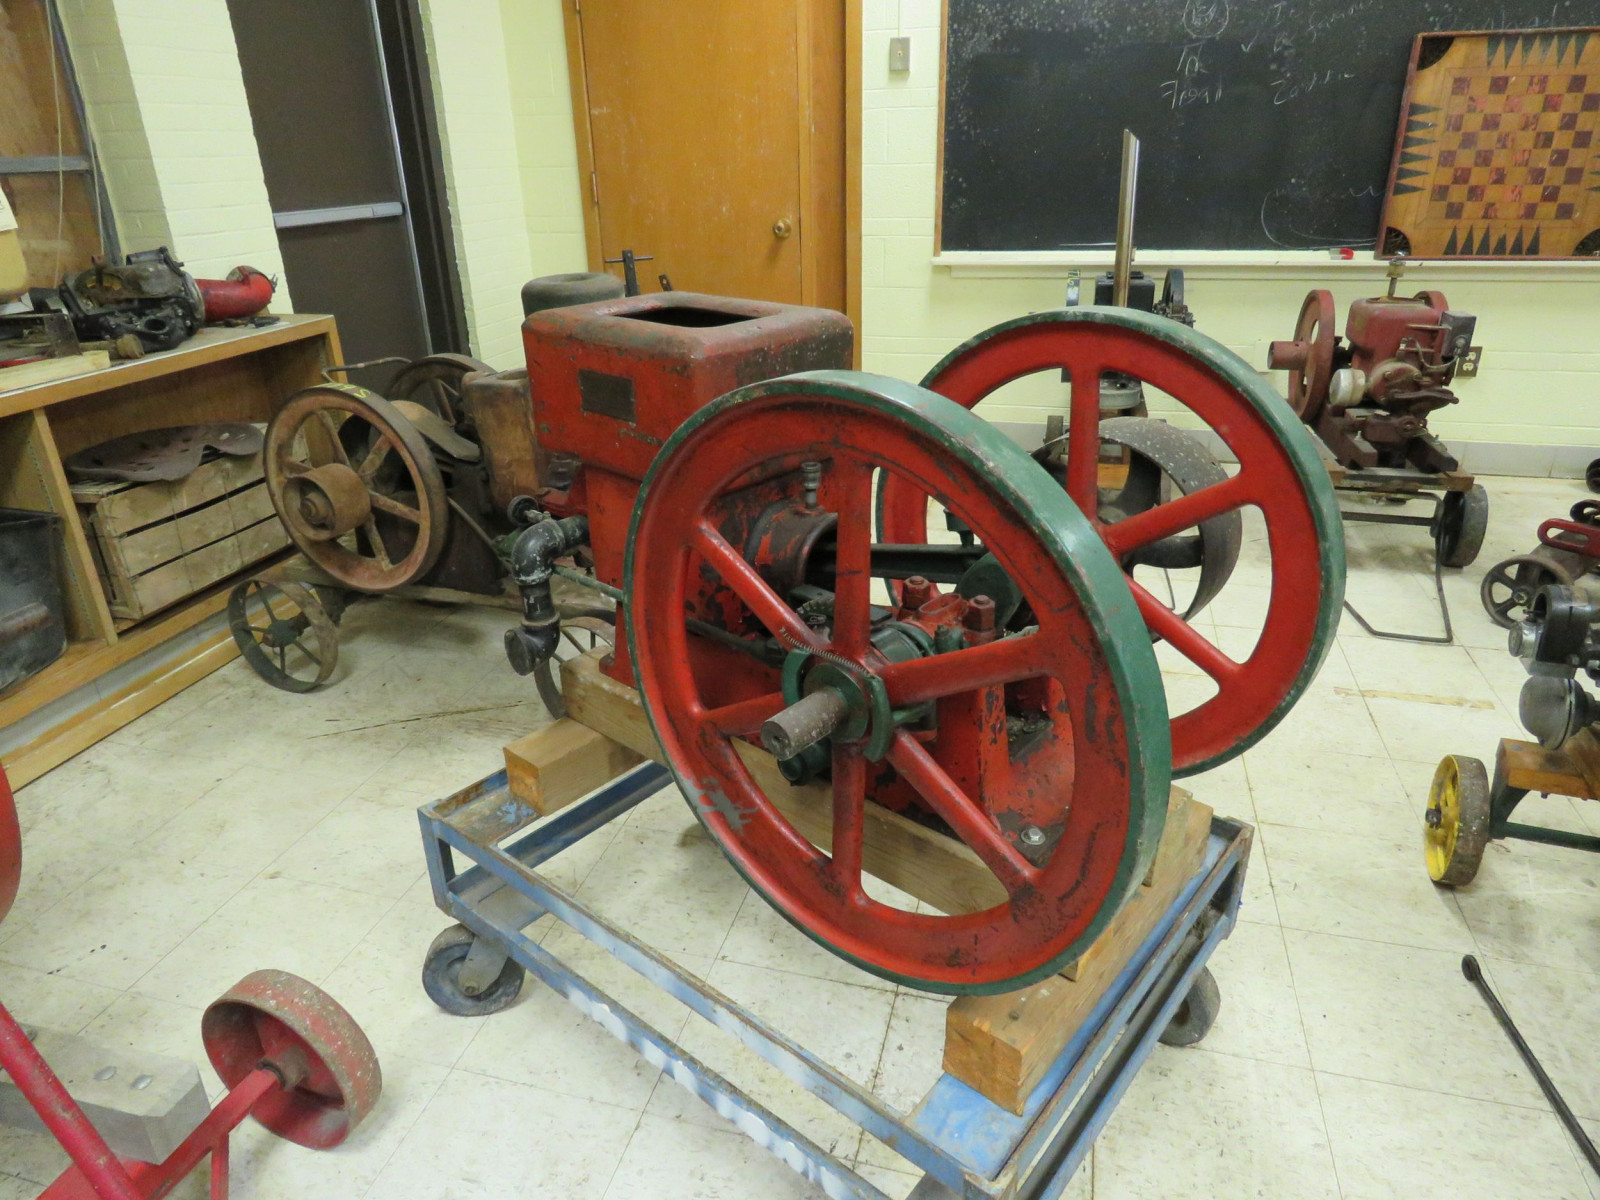 Meco 3HP Stationary Gas Engine - Image 4